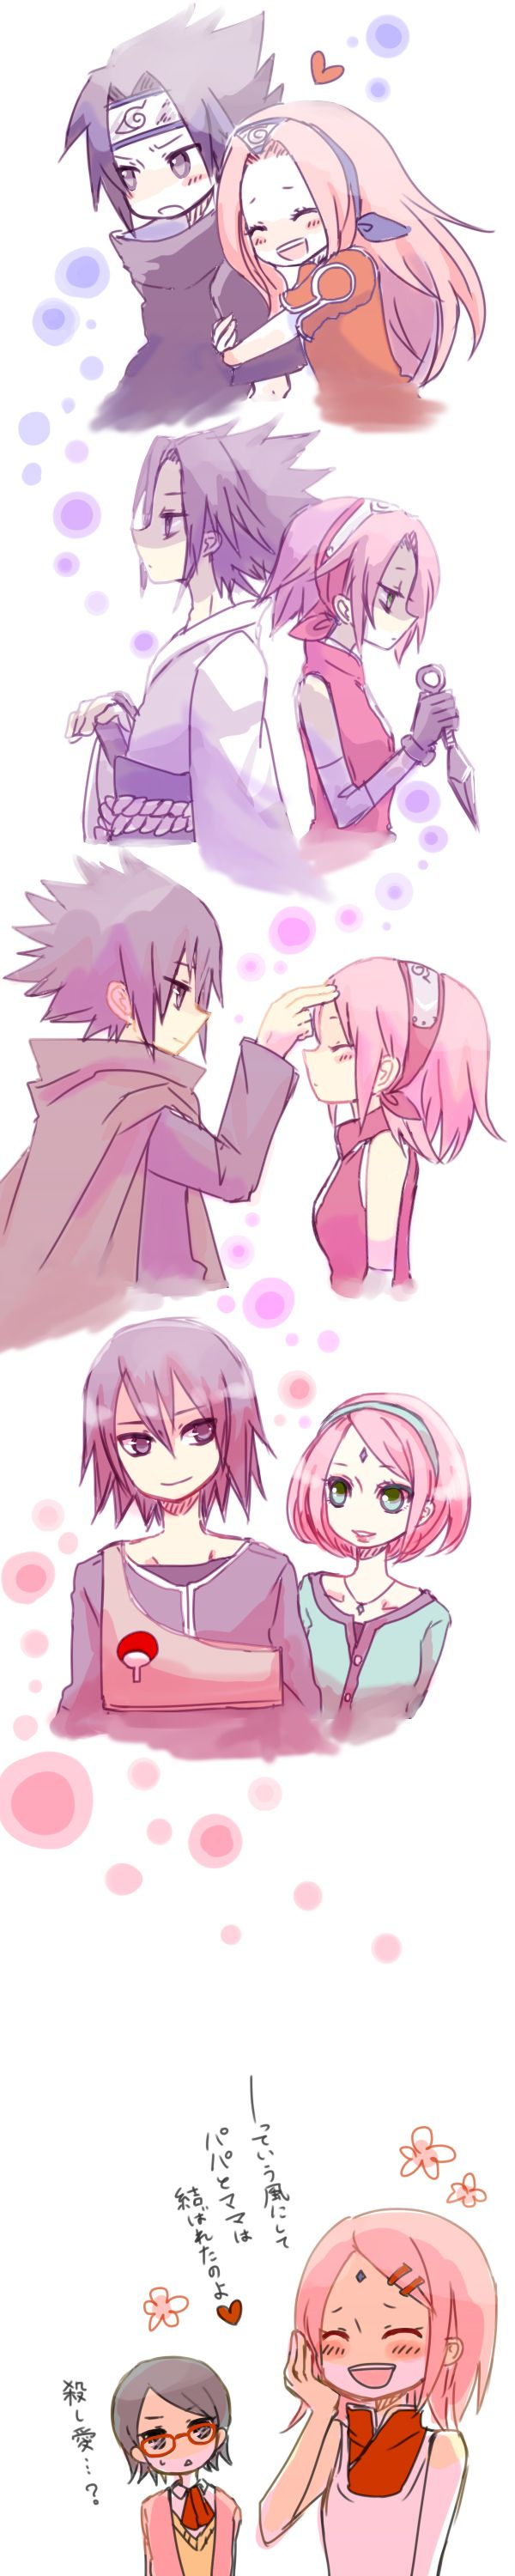 The years of SasuSaku. Sakura. Finally gets what's she's always wanted Sasuke and their very own child to raise together well at least that's what I'd like to think.